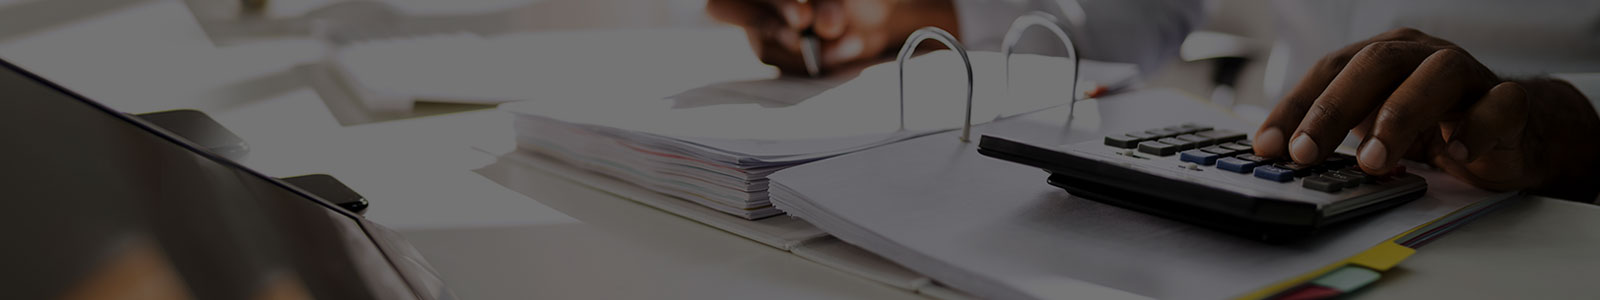 Outsourcing General Ledger Accounting Services